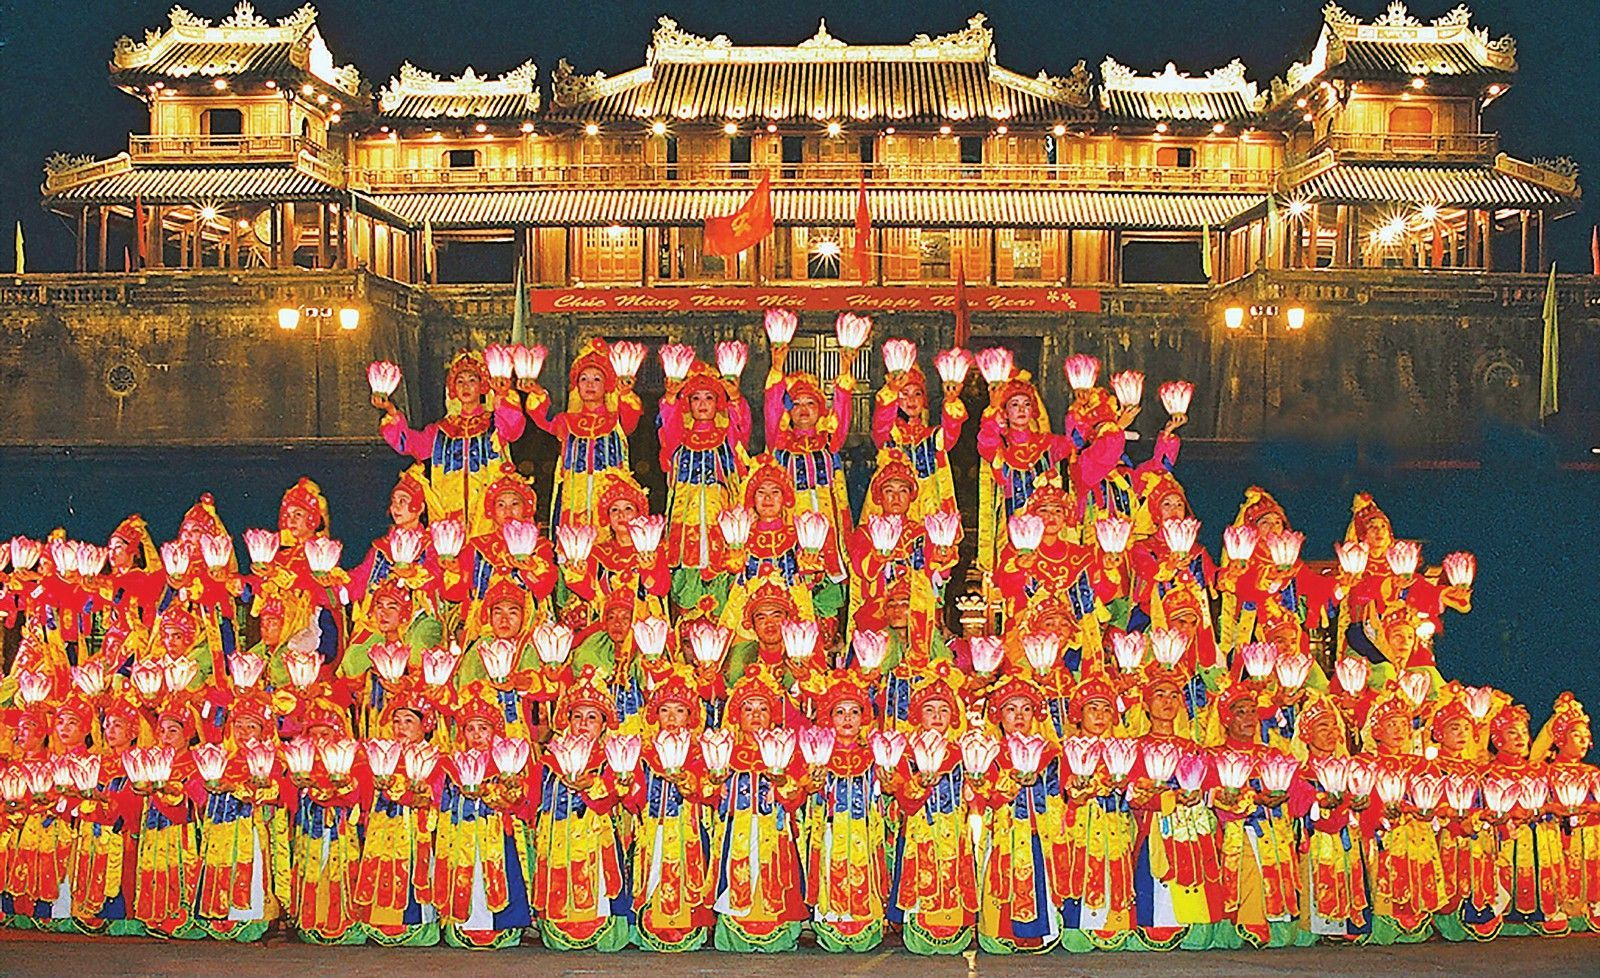 Enjoying Hue royal court music - the world's intangible cultural heritage